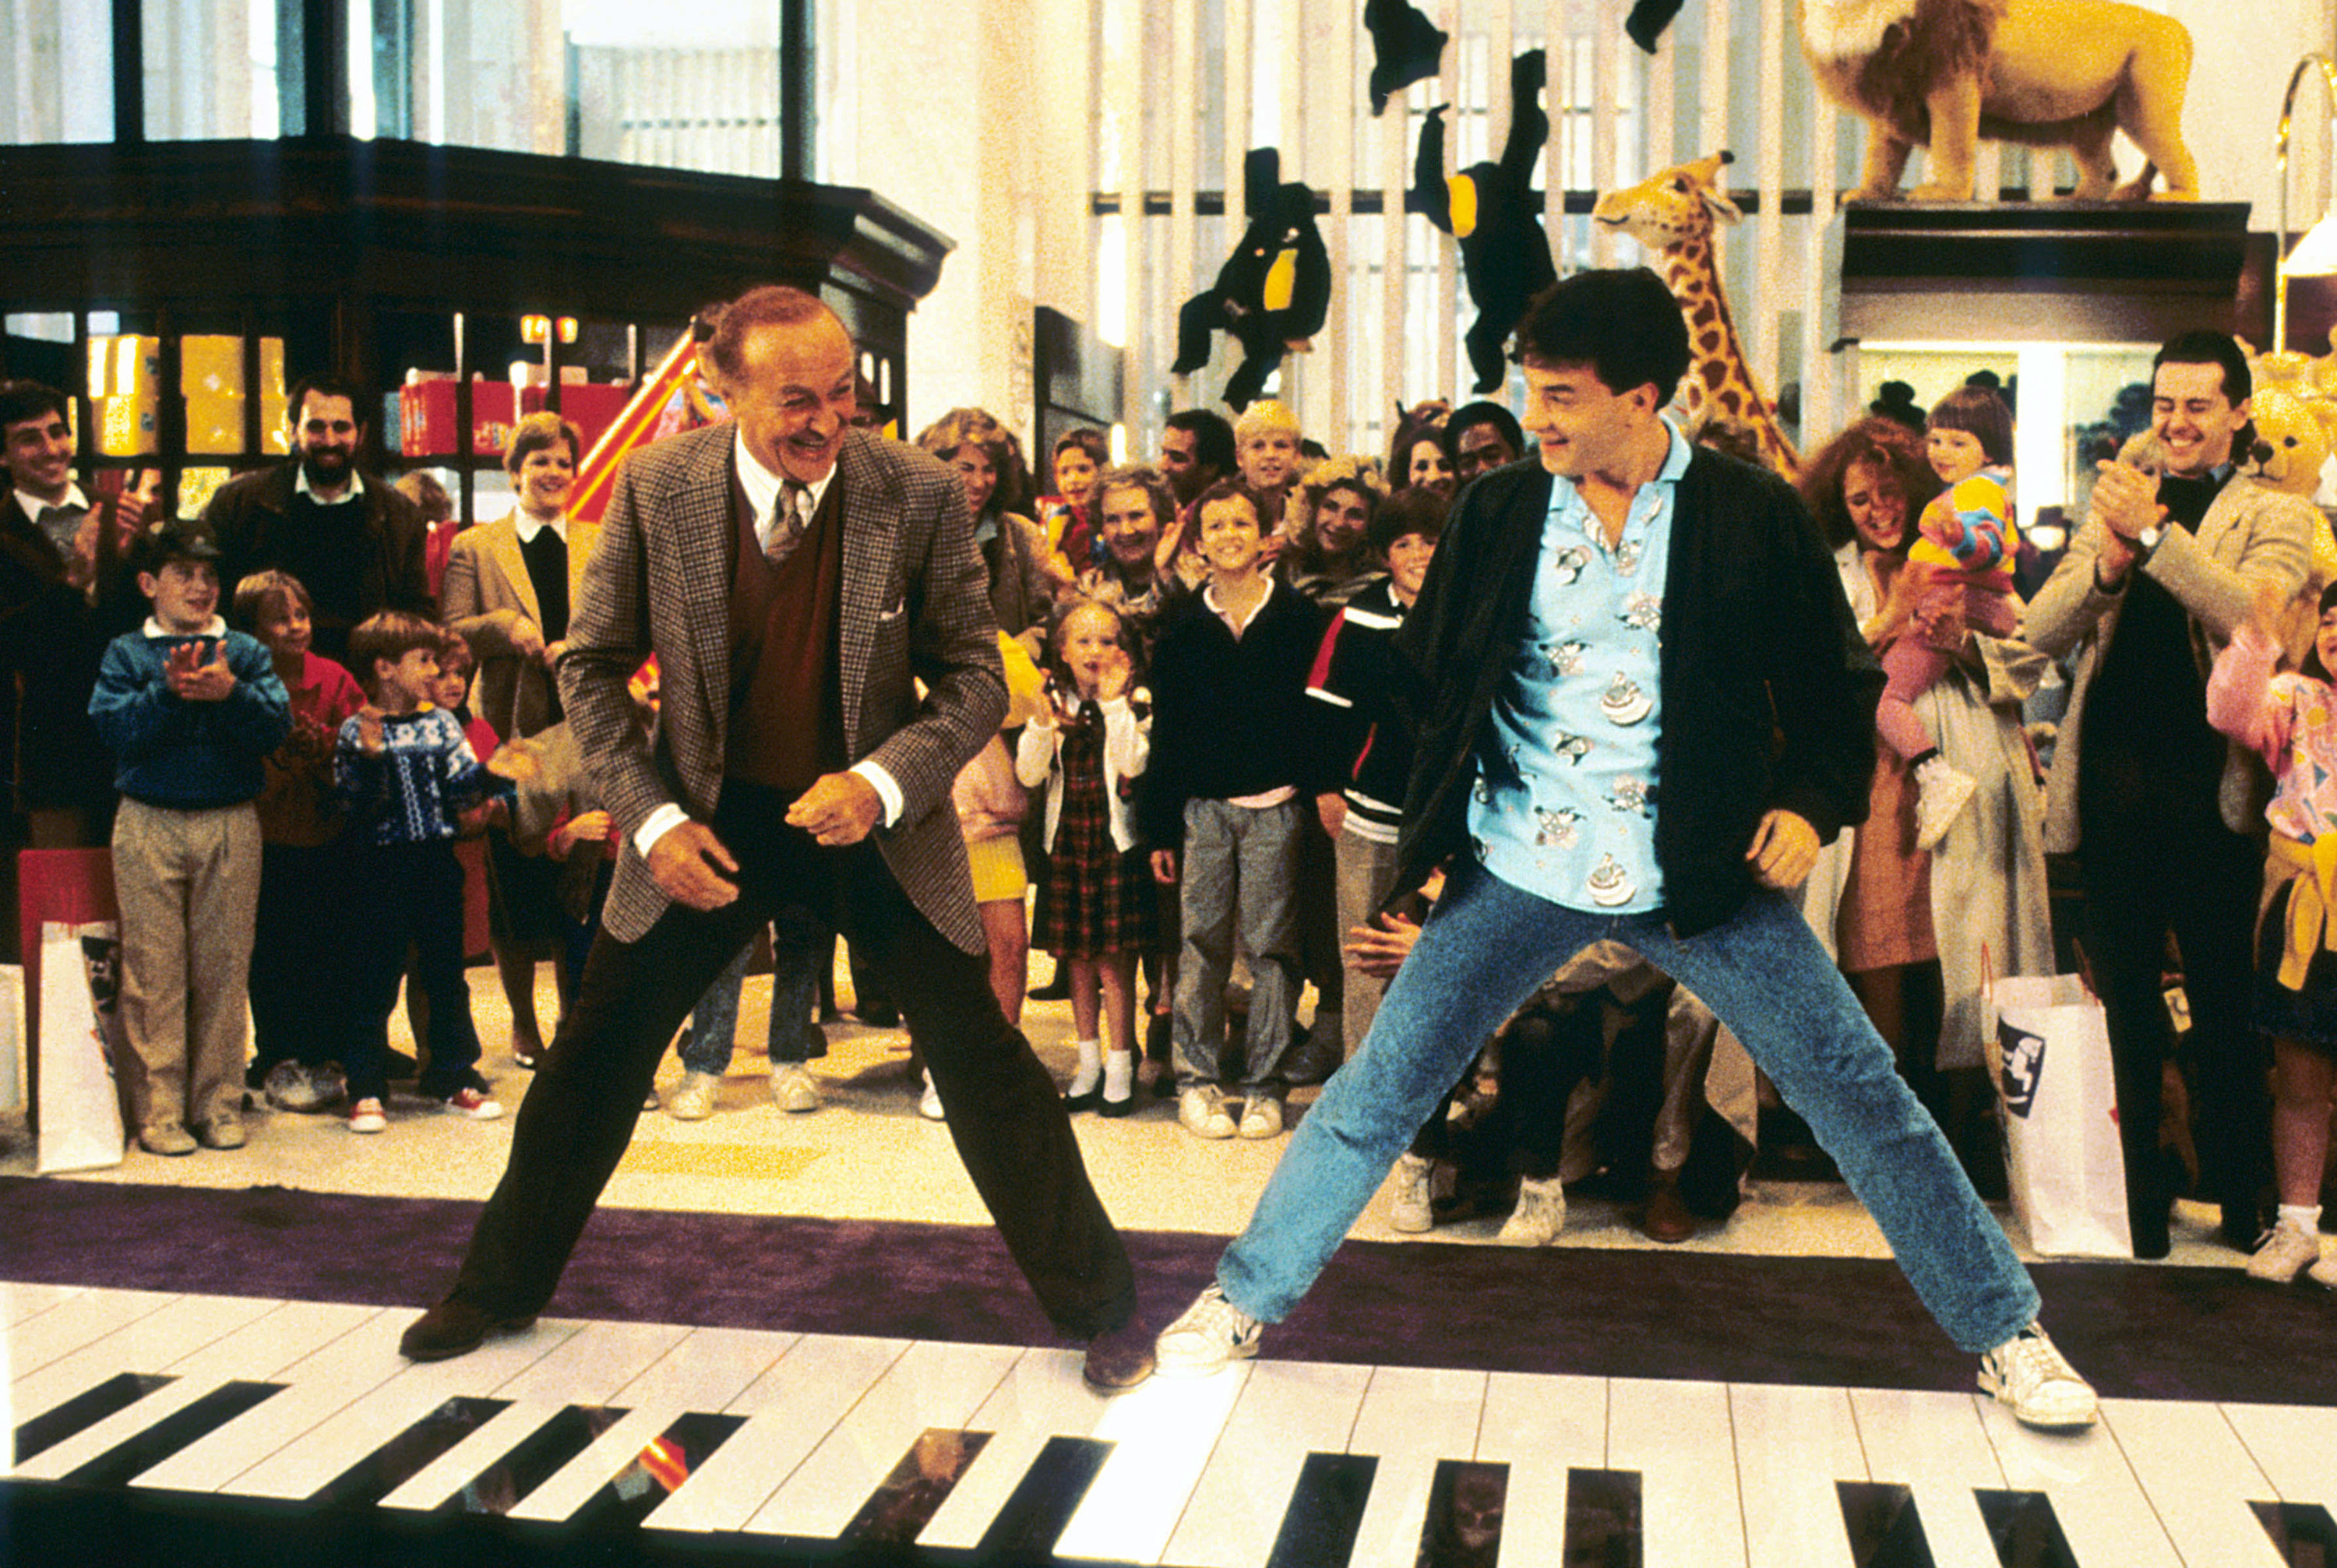 Two men stand widely on a large piano rolled out over the ground